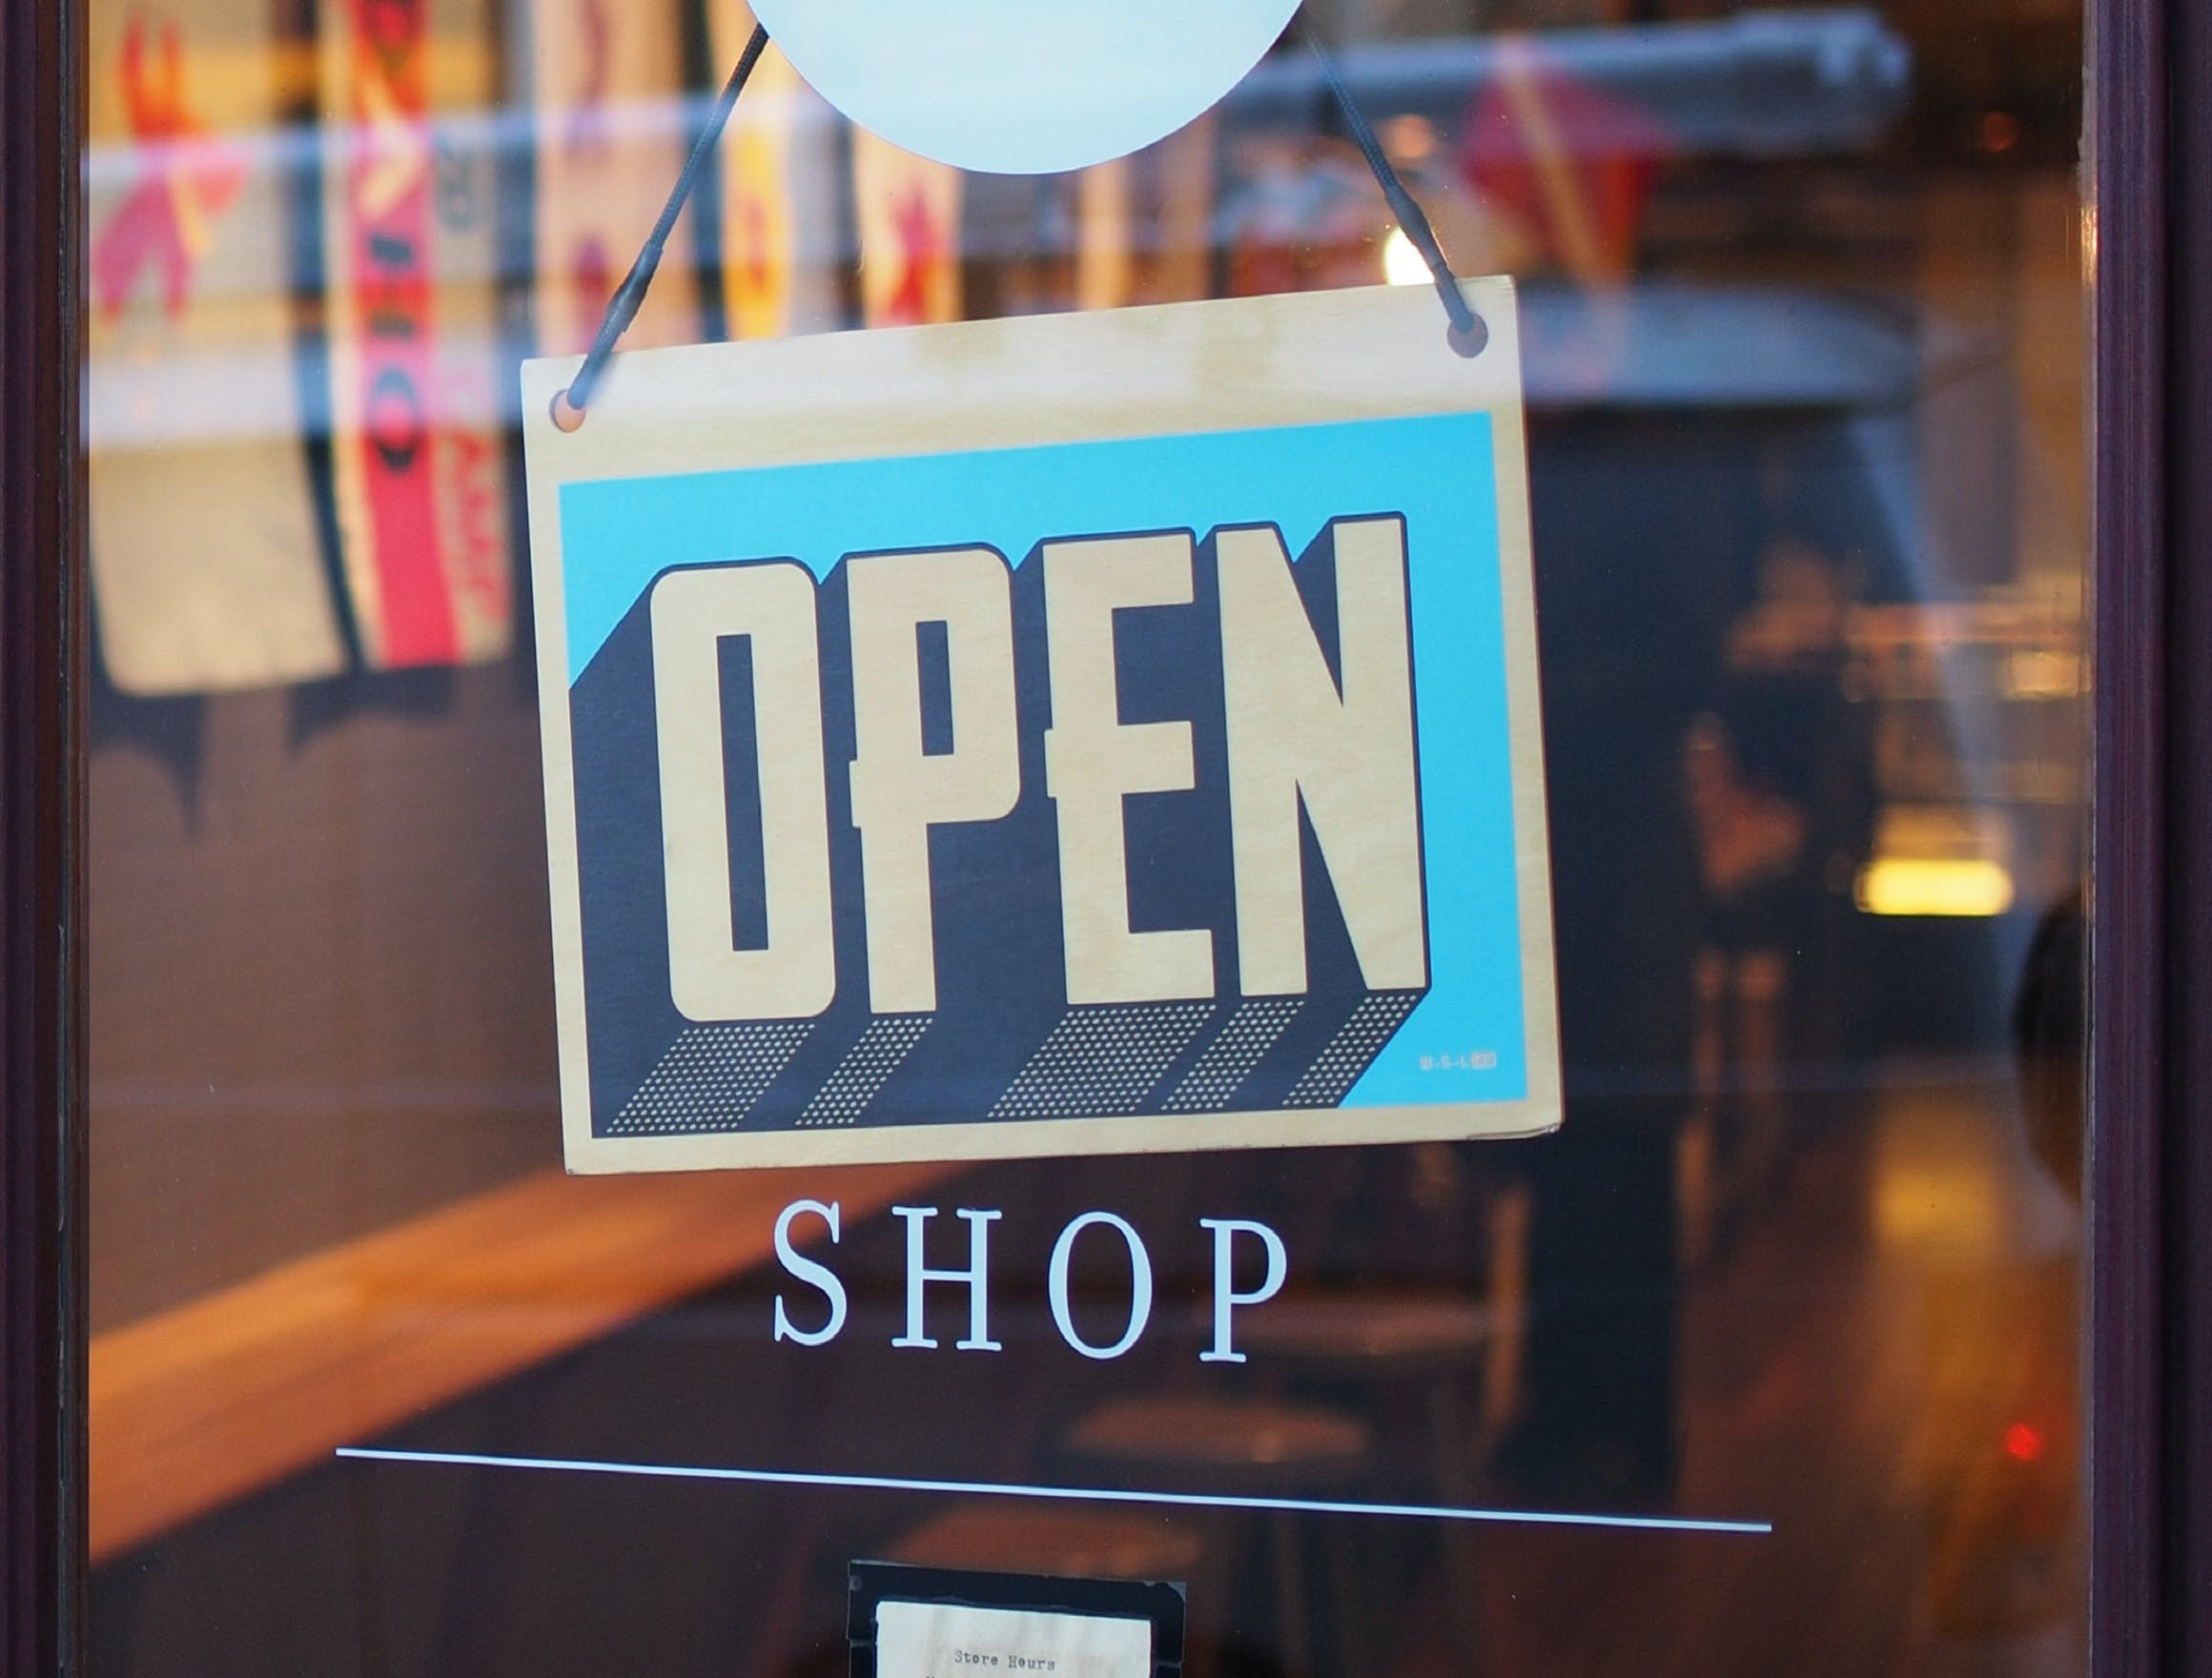 We take a look at the steps retailers need to take to ensure they're ready for the future, with clienteling at the heart of their omnichannel strategy